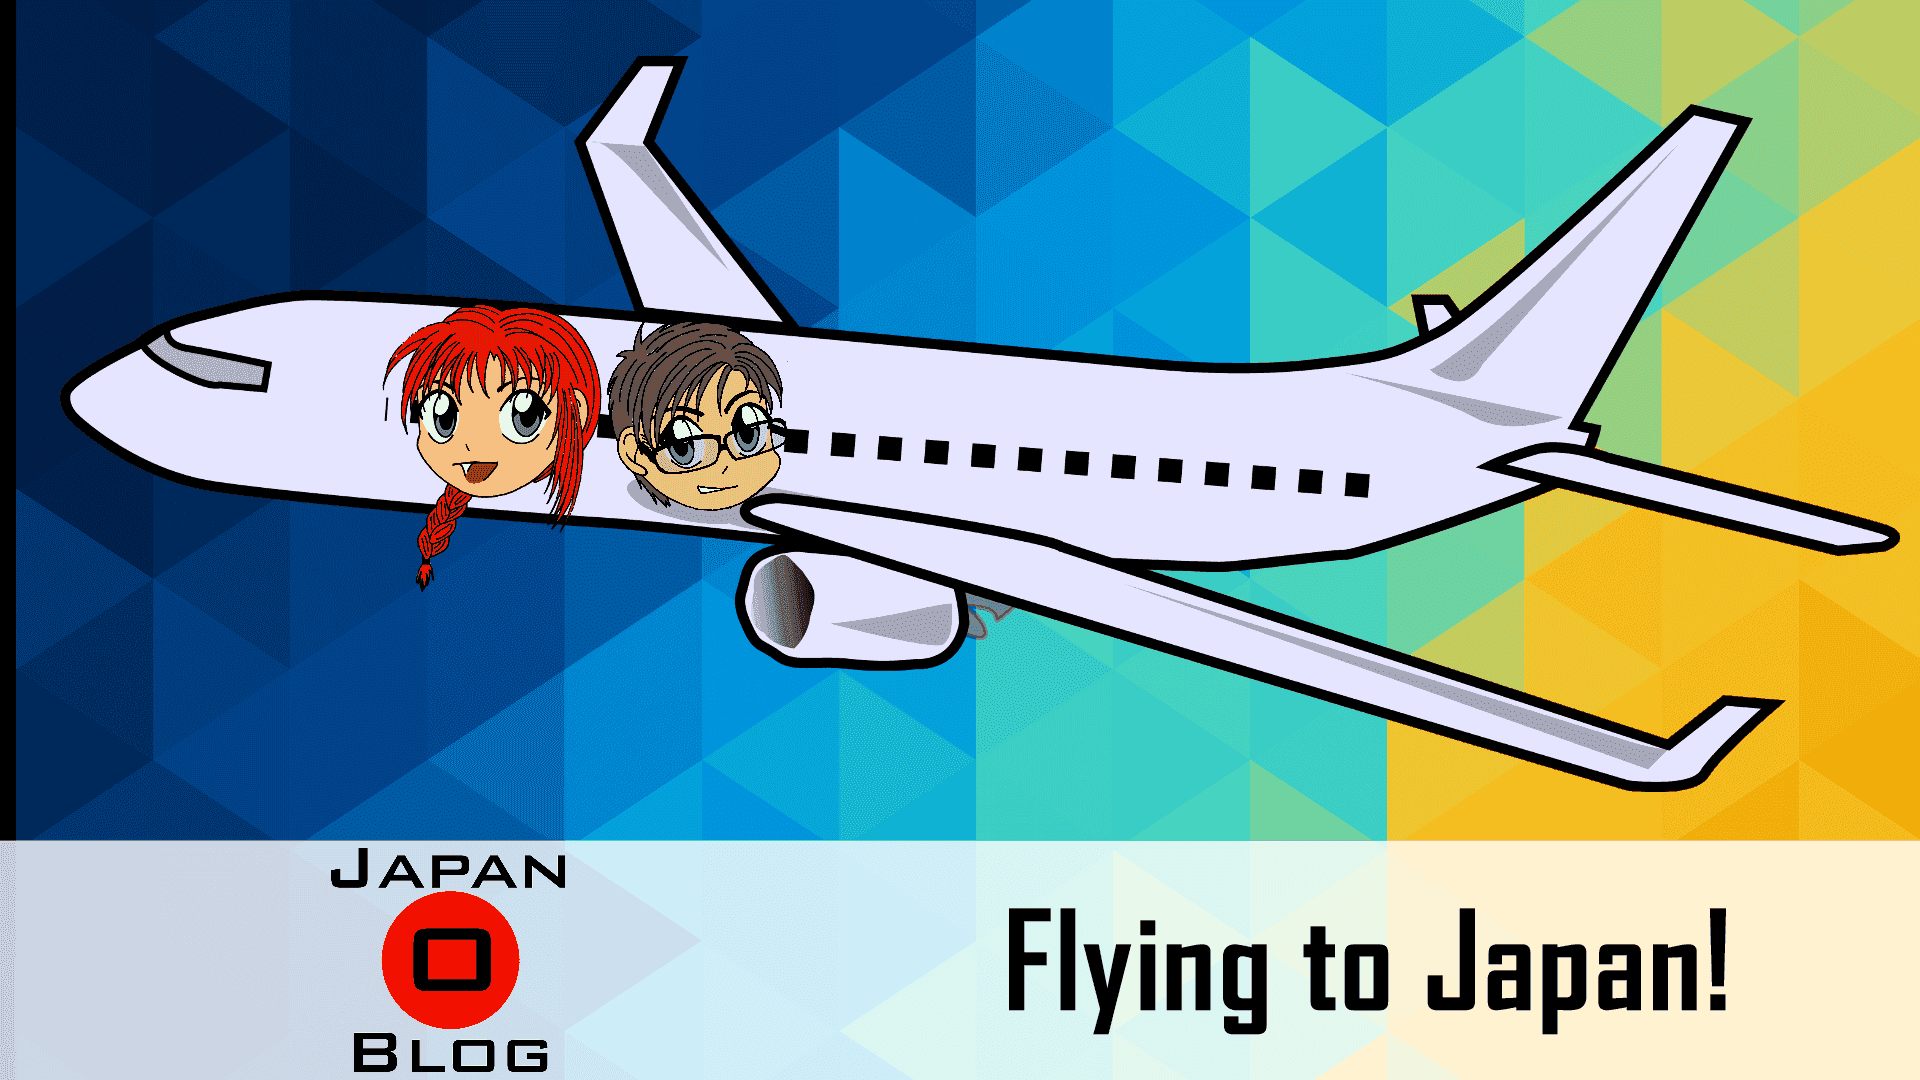 Flying to Japan!